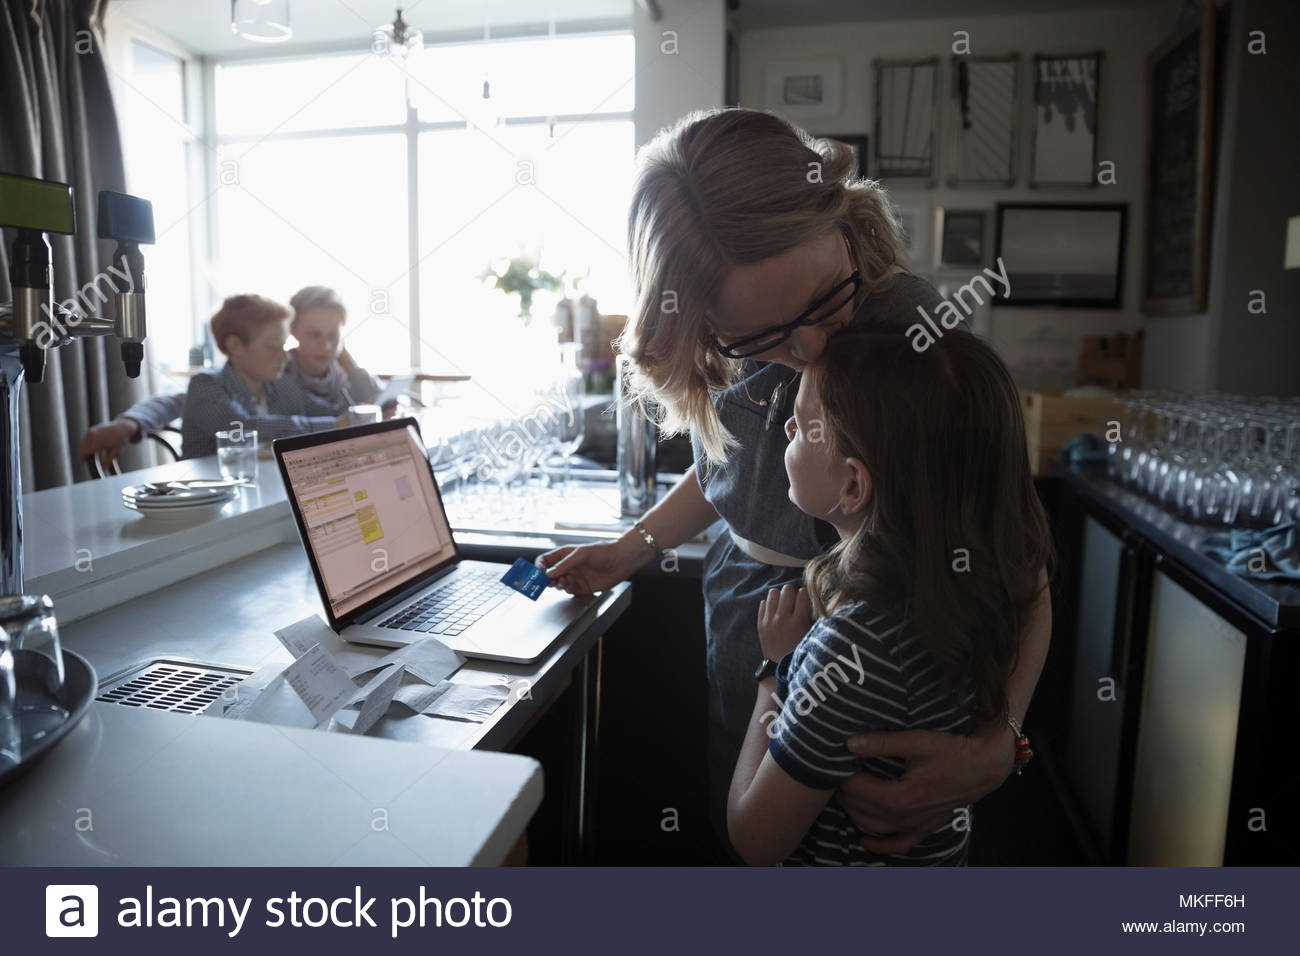 Affectionate family business mother and daughter hugging at laptop in cafe - Stock Image